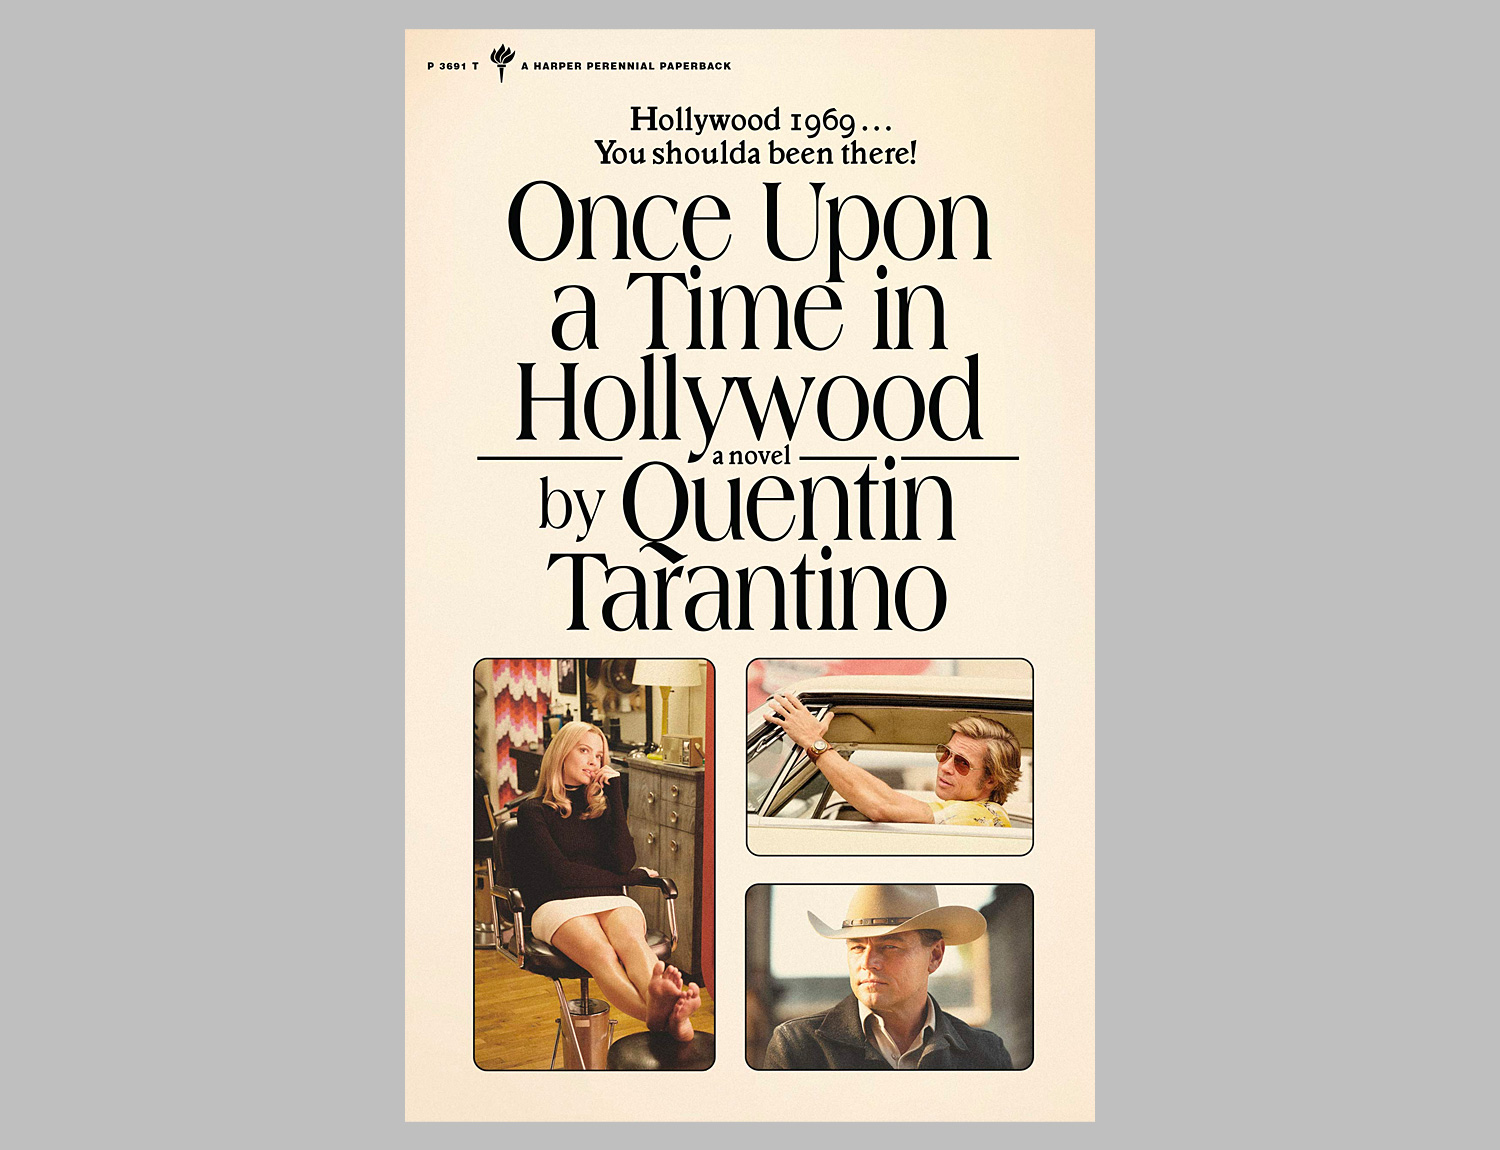 Once Upon a Time in Hollywood: A Novel at werd.com